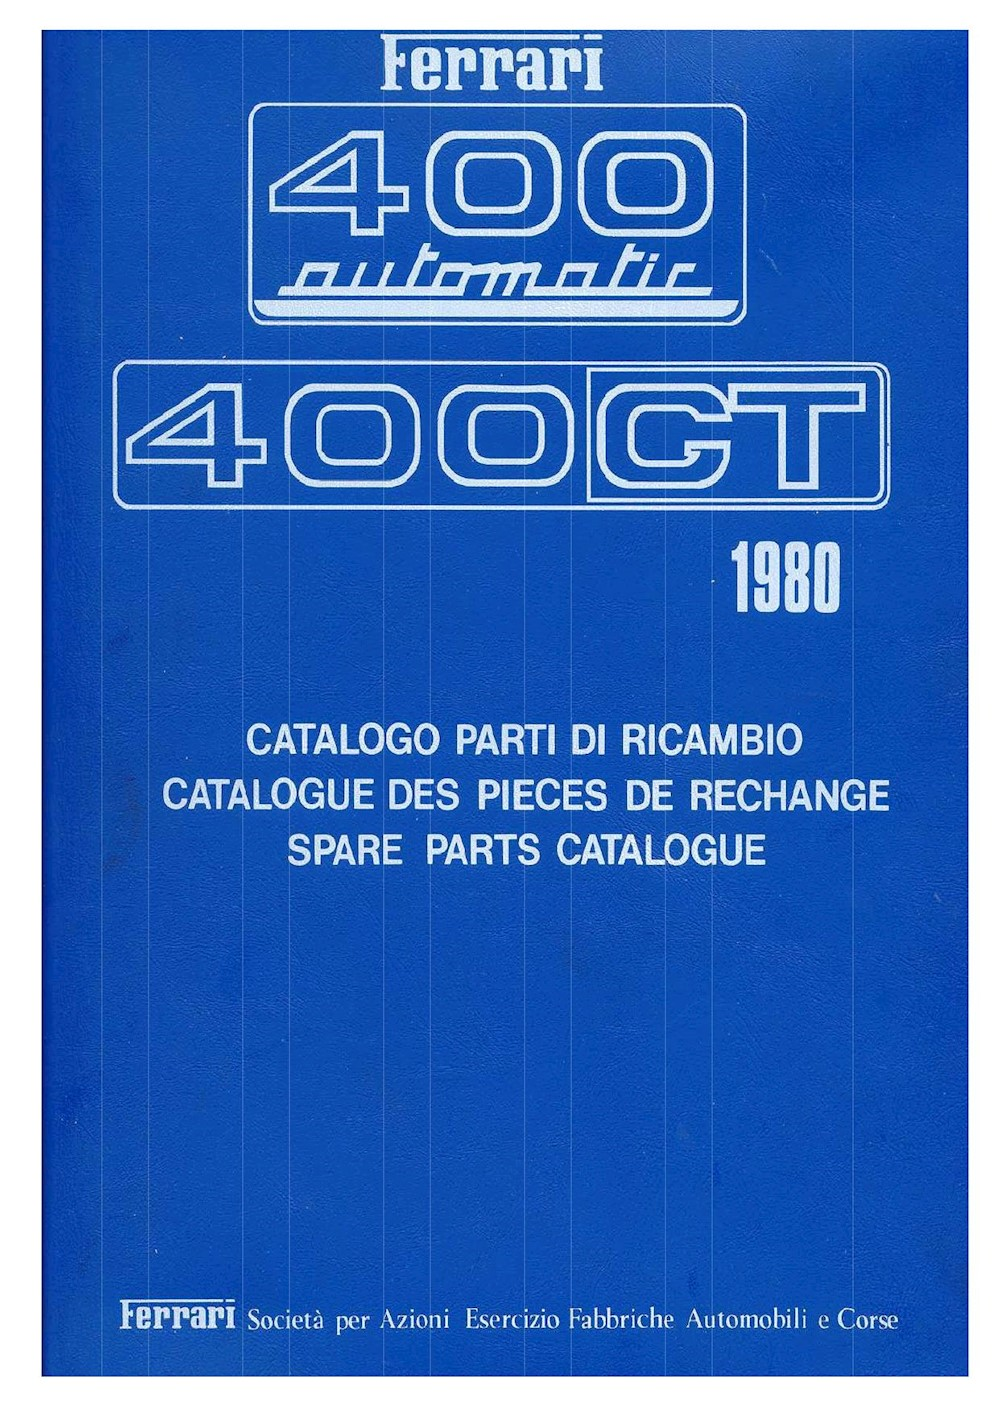 Ferrari 400 Technical Spare Parts 1980 EN FR IT